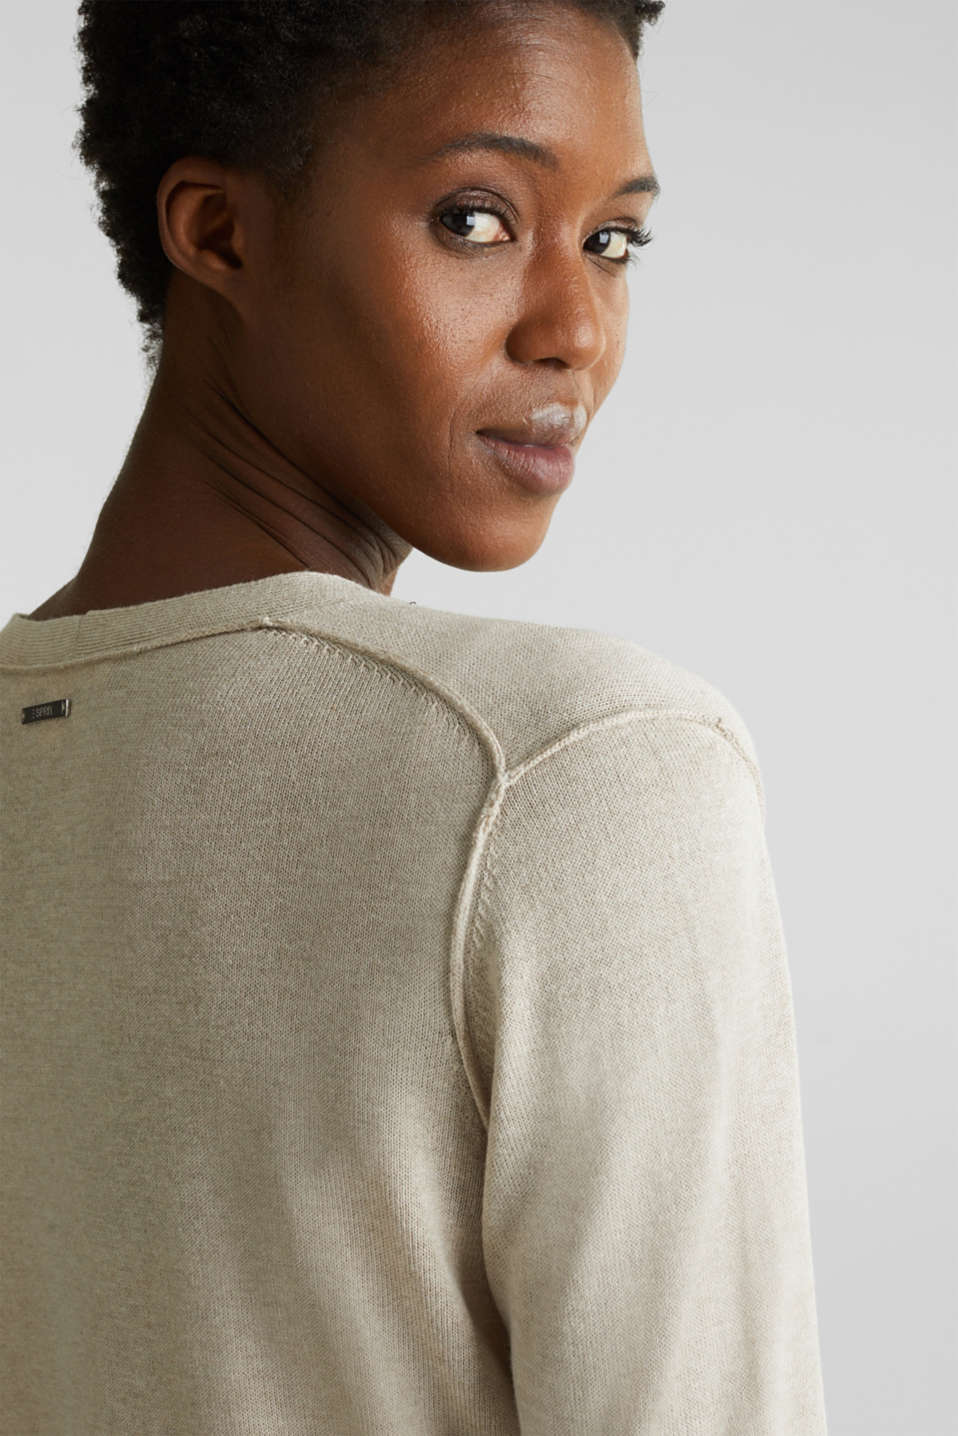 With linen: open-fronted cardigan with pockets, LIGHT BEIGE, detail image number 2